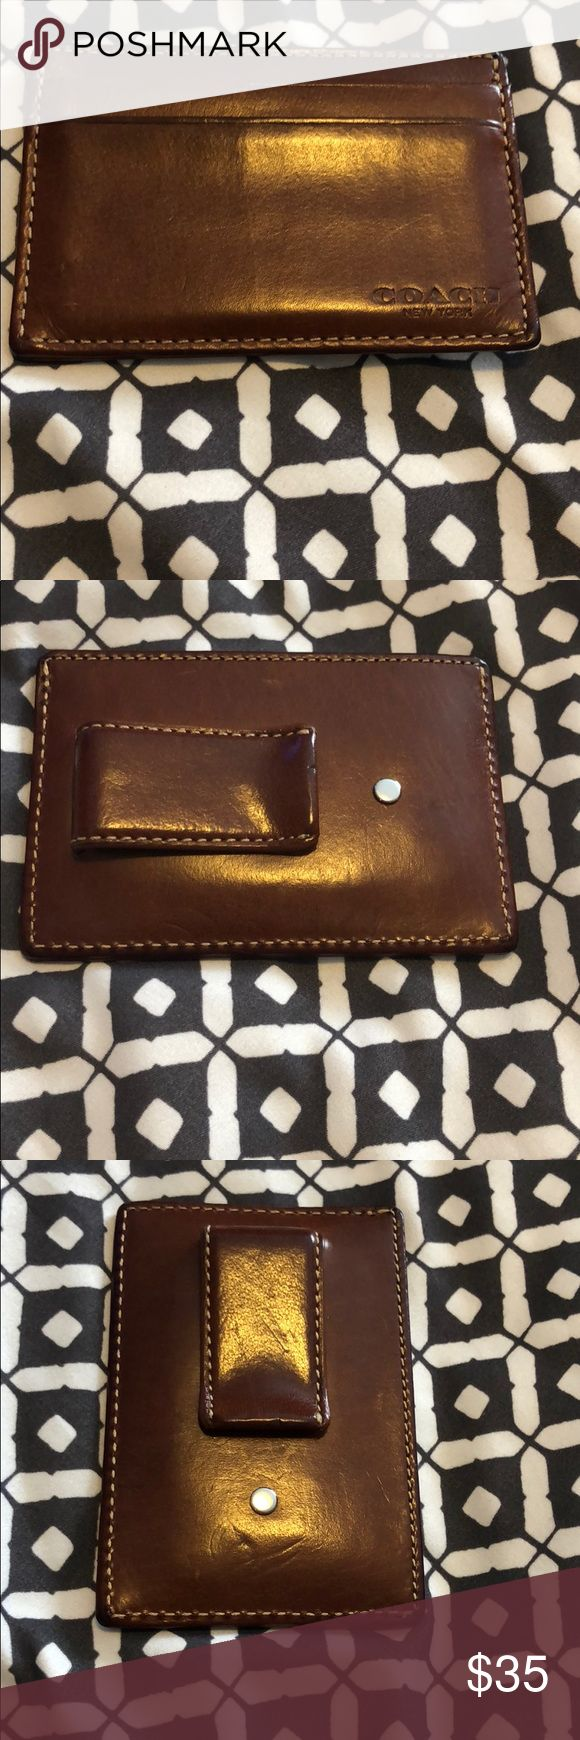 """Mens Money Clip Card Case in sport calf leather Great condition & slightly used. Pictures show minor usage scratches.  100% Leather Calf leather Credit card and multifunction pockets Approx. 4"""" (L) x 2"""" (H) Coach Accessories Money Clips"""